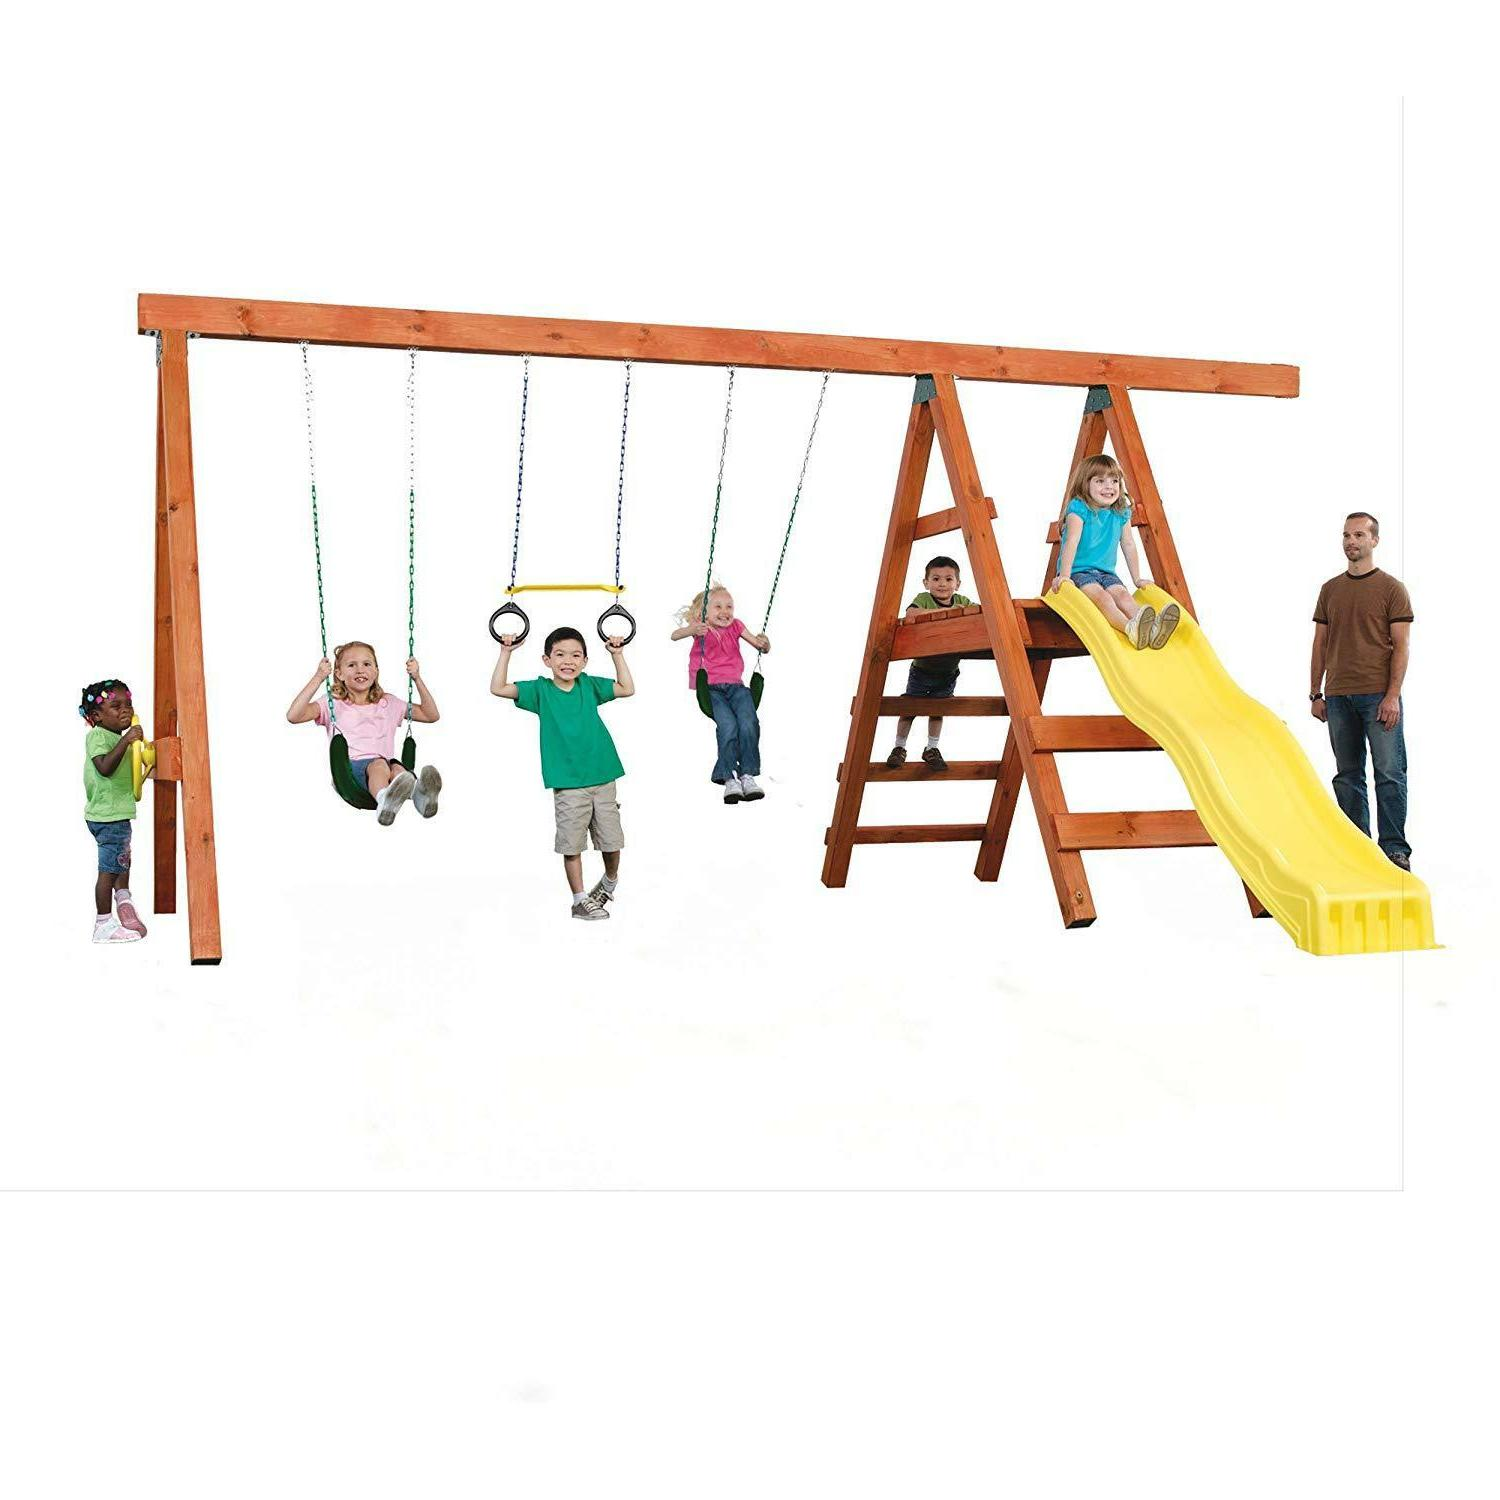 Hardware For Set Kids Fun Backyard Swing Slide Games